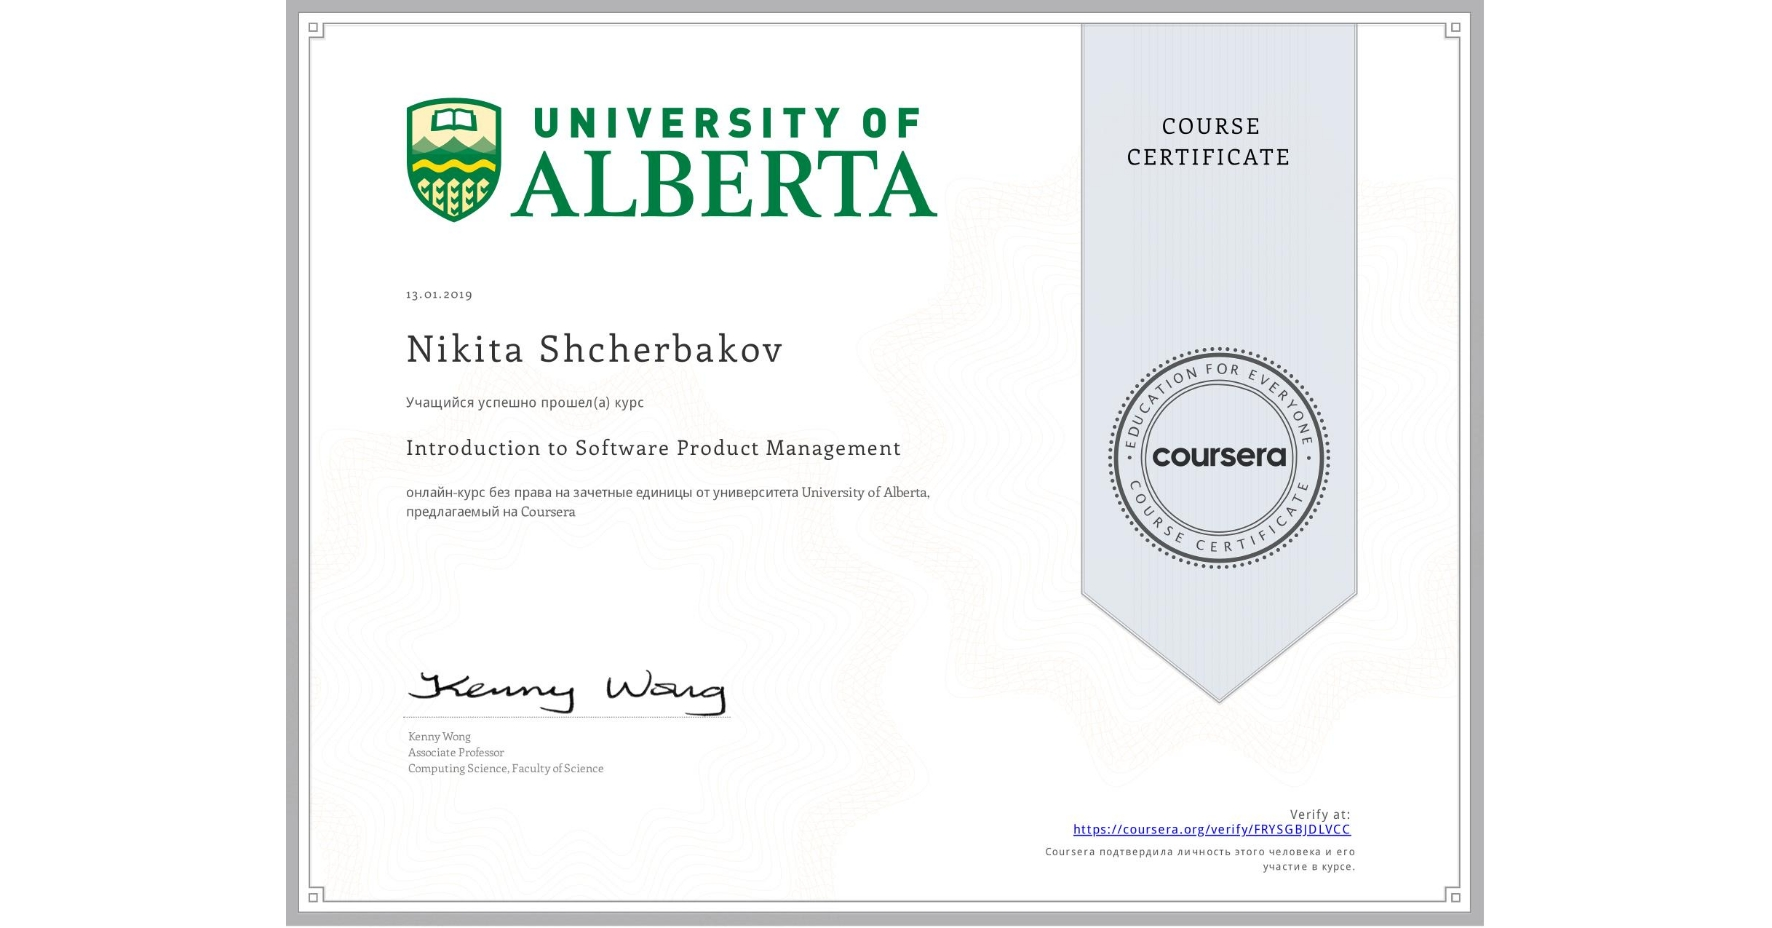 View certificate for Nikita Shcherbakov, Introduction to Software Product Management, an online non-credit course authorized by University of Alberta and offered through Coursera